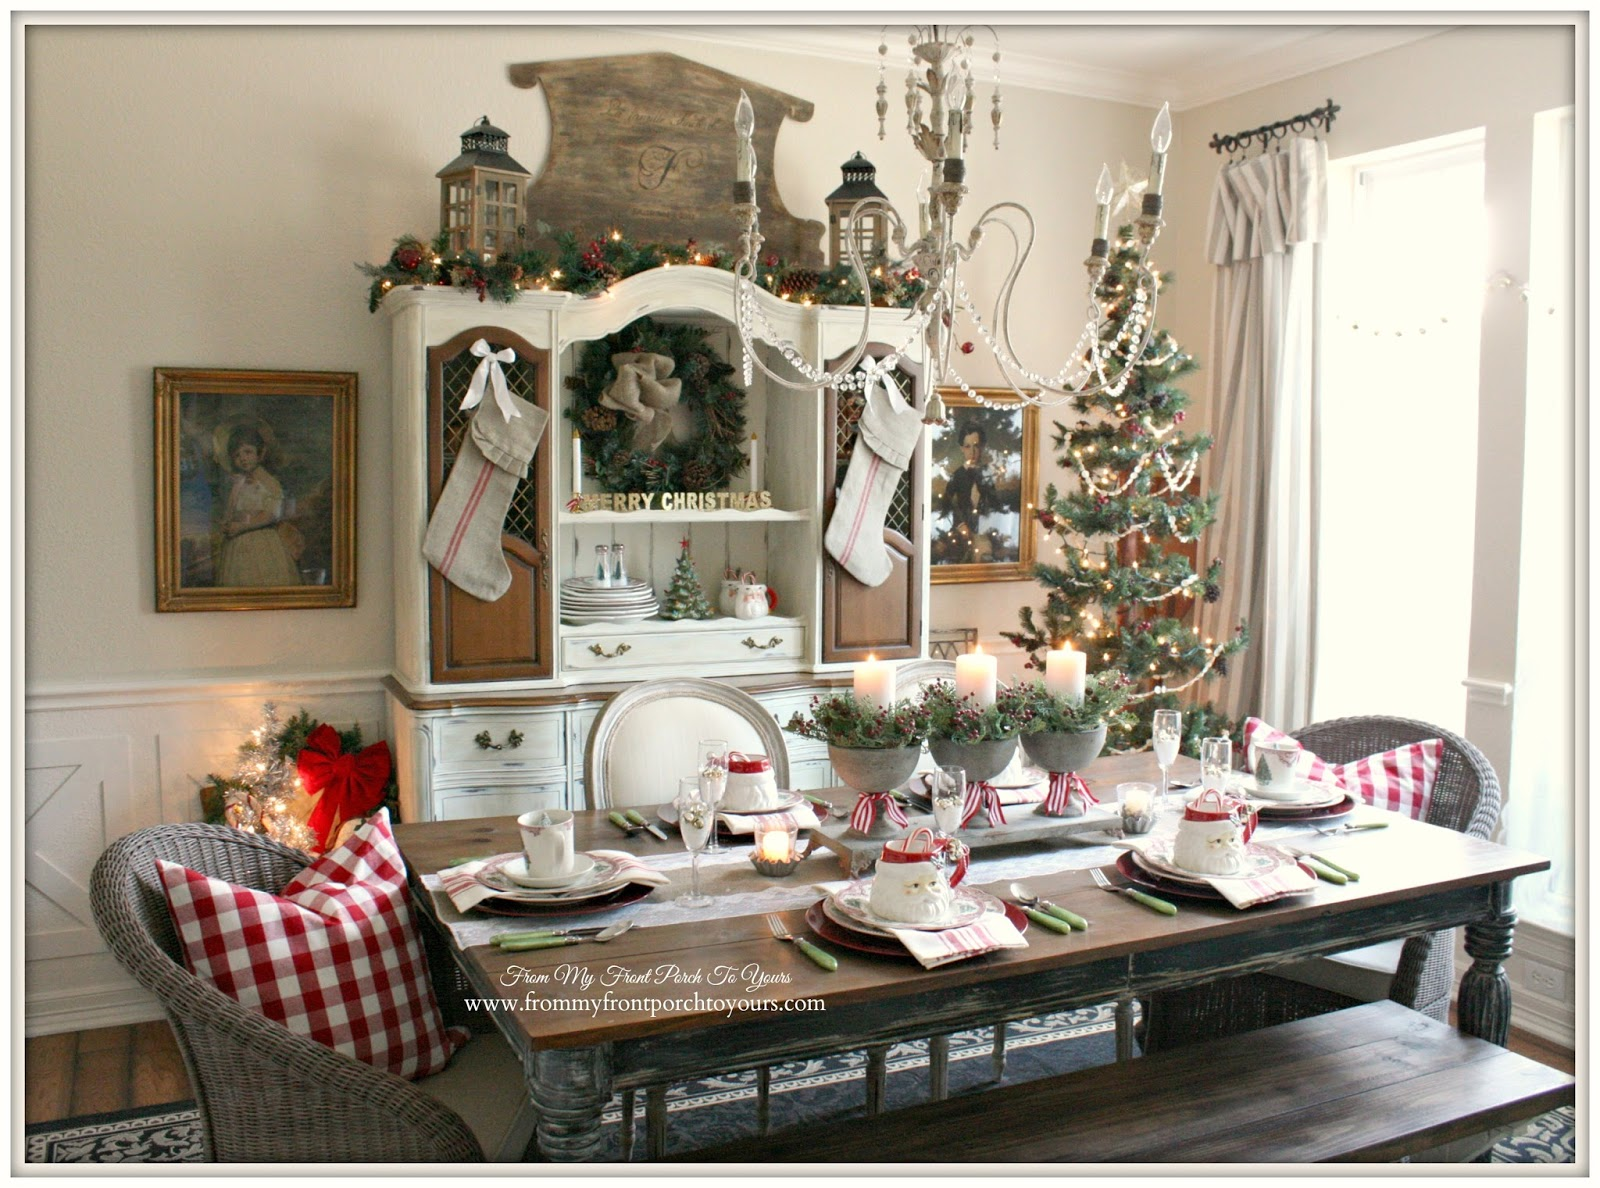 From My Front Porch To Yours French Farmhouse Vintage  : christmasdiningroom2014entirespaceIMG3240 from www.frommyfrontporchtoyours.com size 1600 x 1188 jpeg 376kB